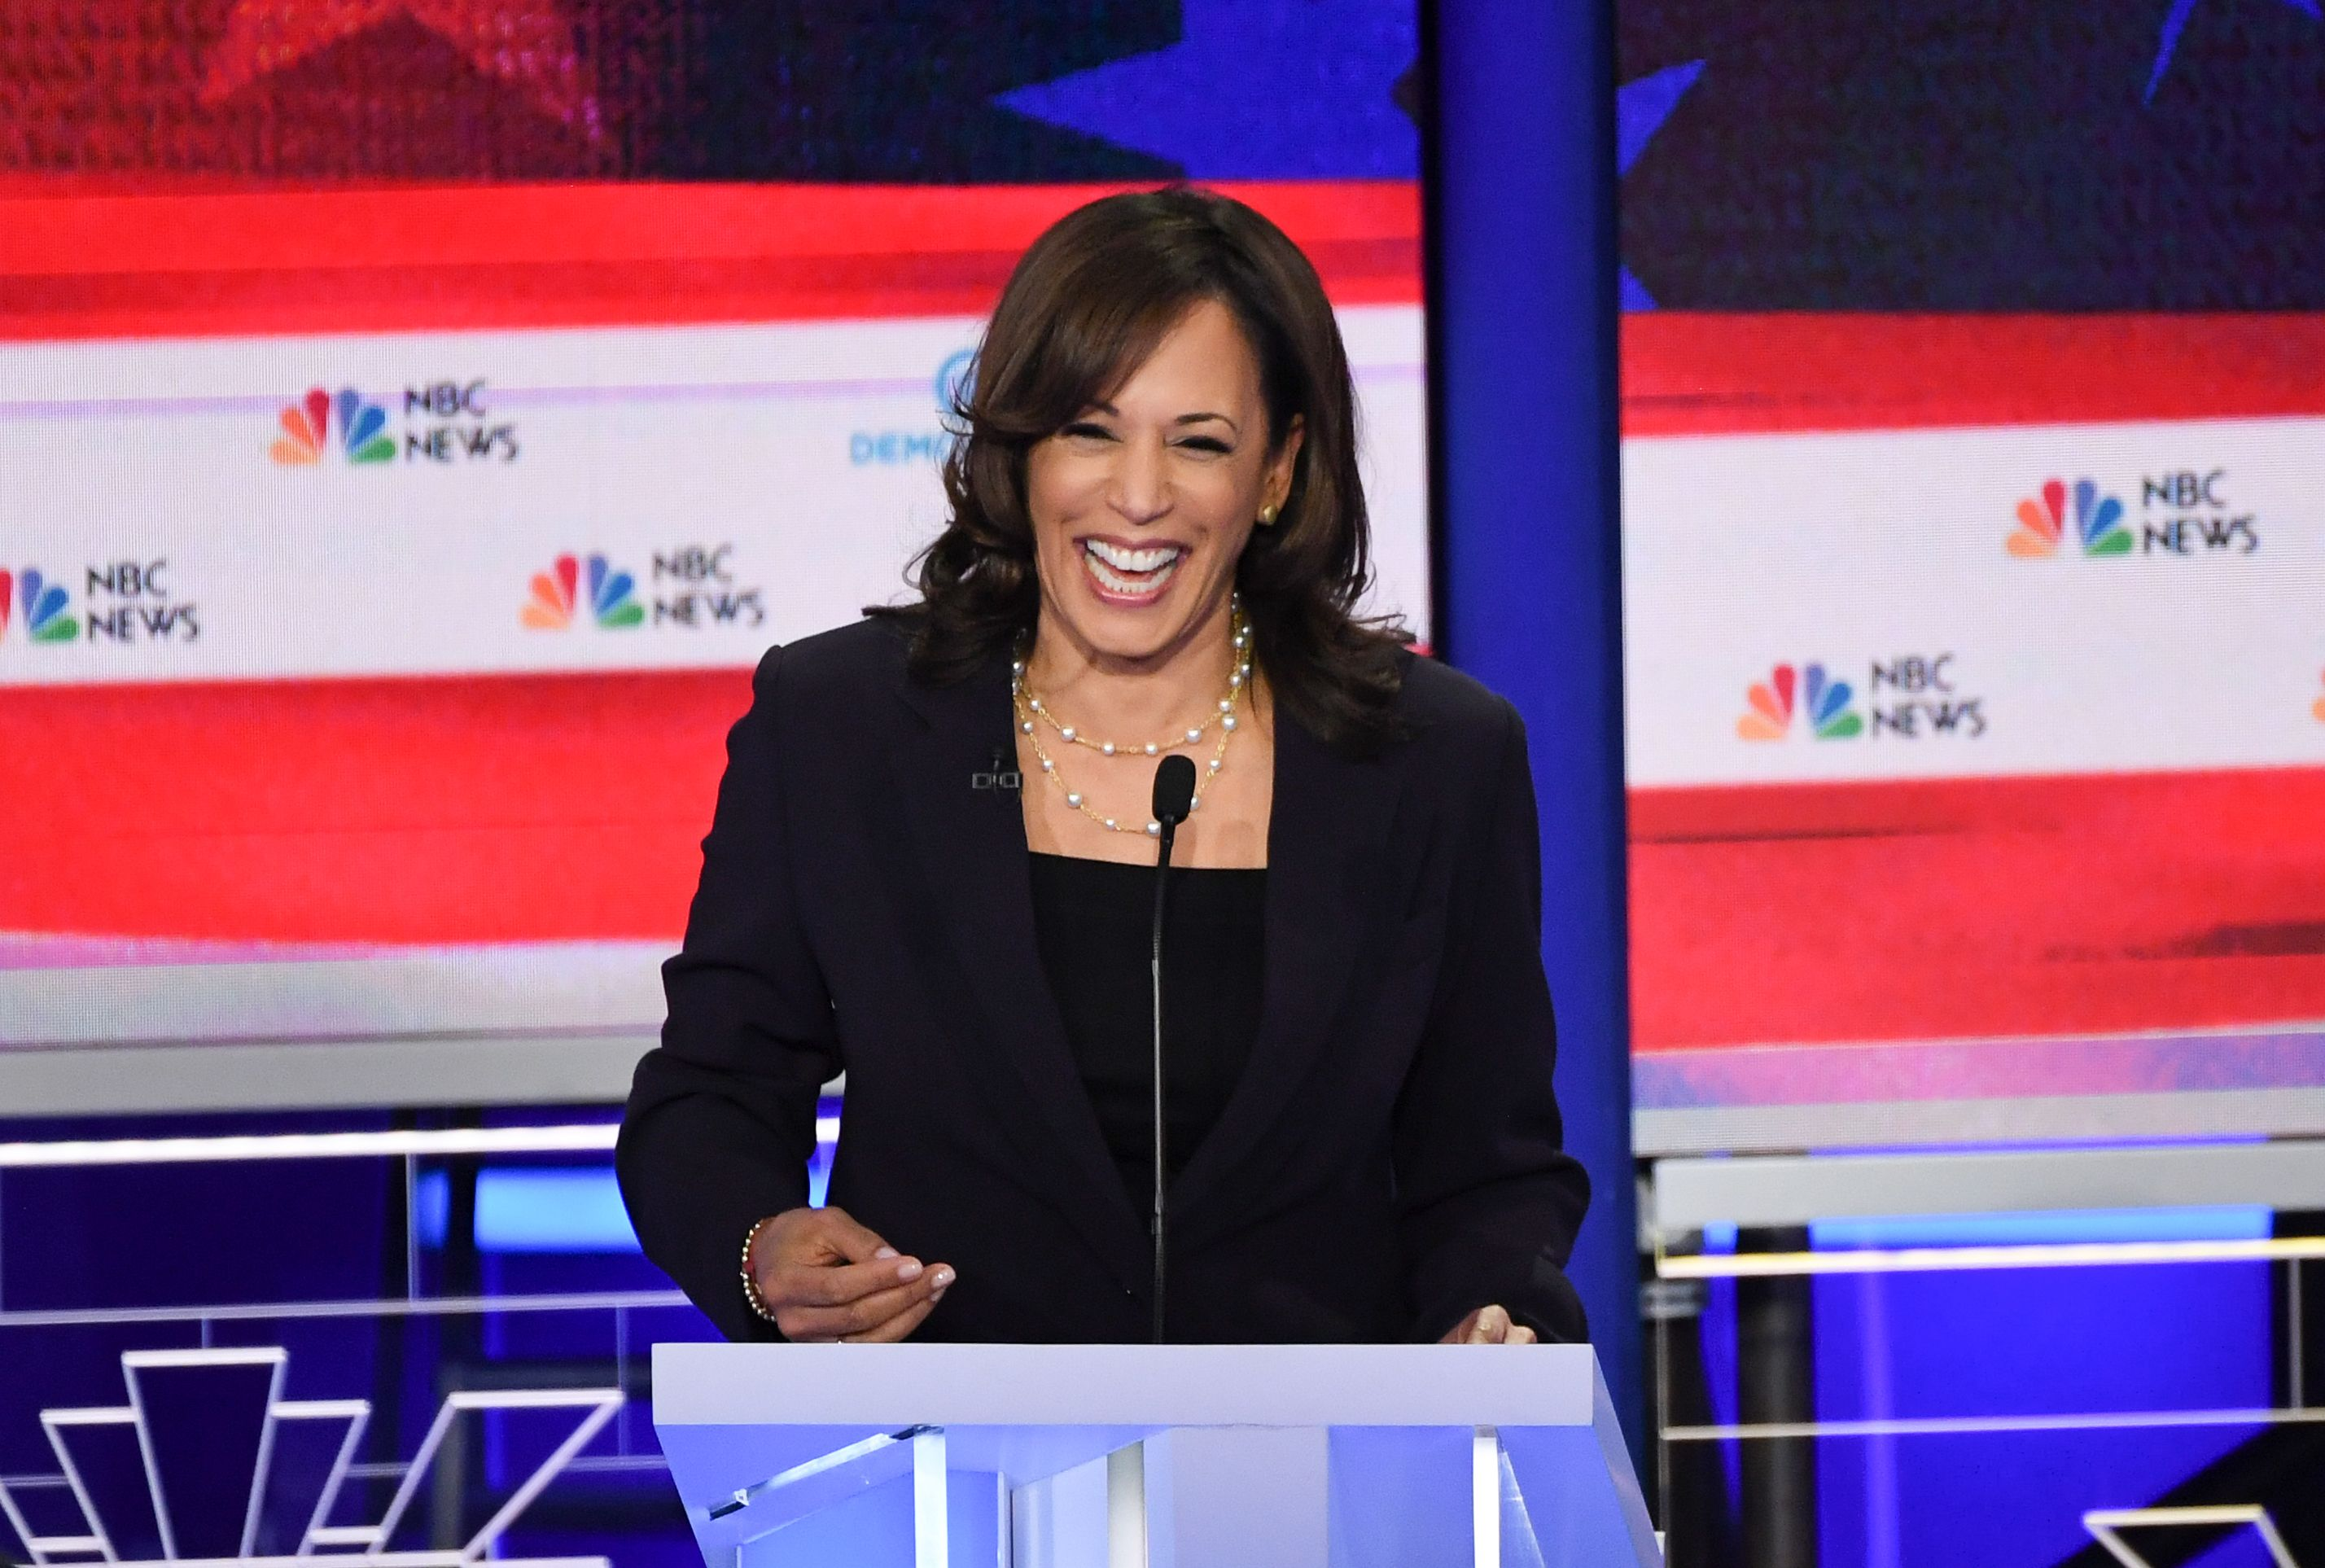 Democratic presidential hopeful US Senator for California Kamala Harris participates in the second Democratic primary debate of the 2020 presidential campaign season hosted by NBC News at the Adrienne Arsht Center for the Performing Arts in Miami, Florida, June 27, 2019. (Photo by SAUL LOEB / AFP)        (Photo credit should read SAUL LOEB/AFP/Getty Images)